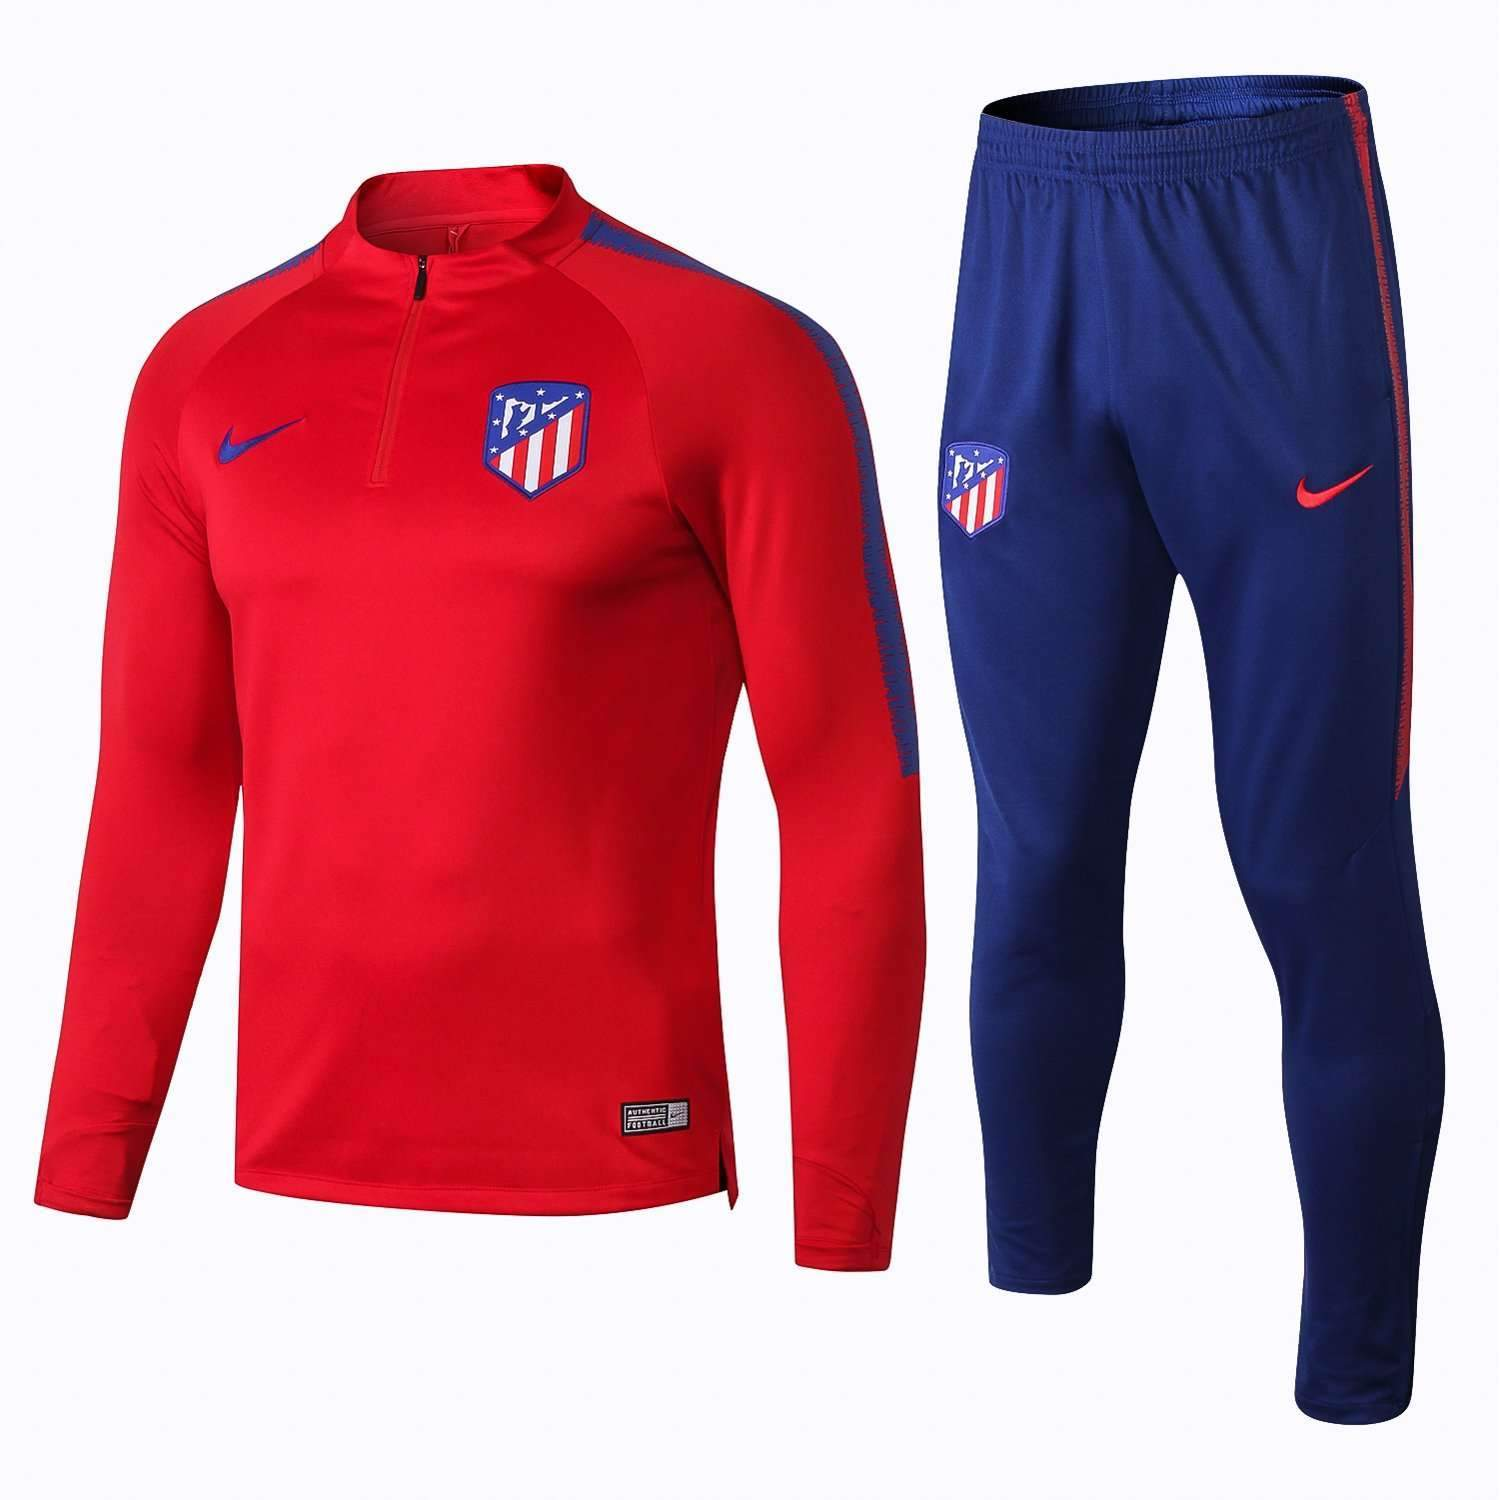 100% authentic bb8fd 61e3f Atlético Madrid Football club Nike 2018 - 19 Replica TRAINING Casual TOPS  TRACKSUIT FÚTBOL CALCIO SOCCER FUSSBALL BNWT Men's Jogging Tracksuit Zip ...